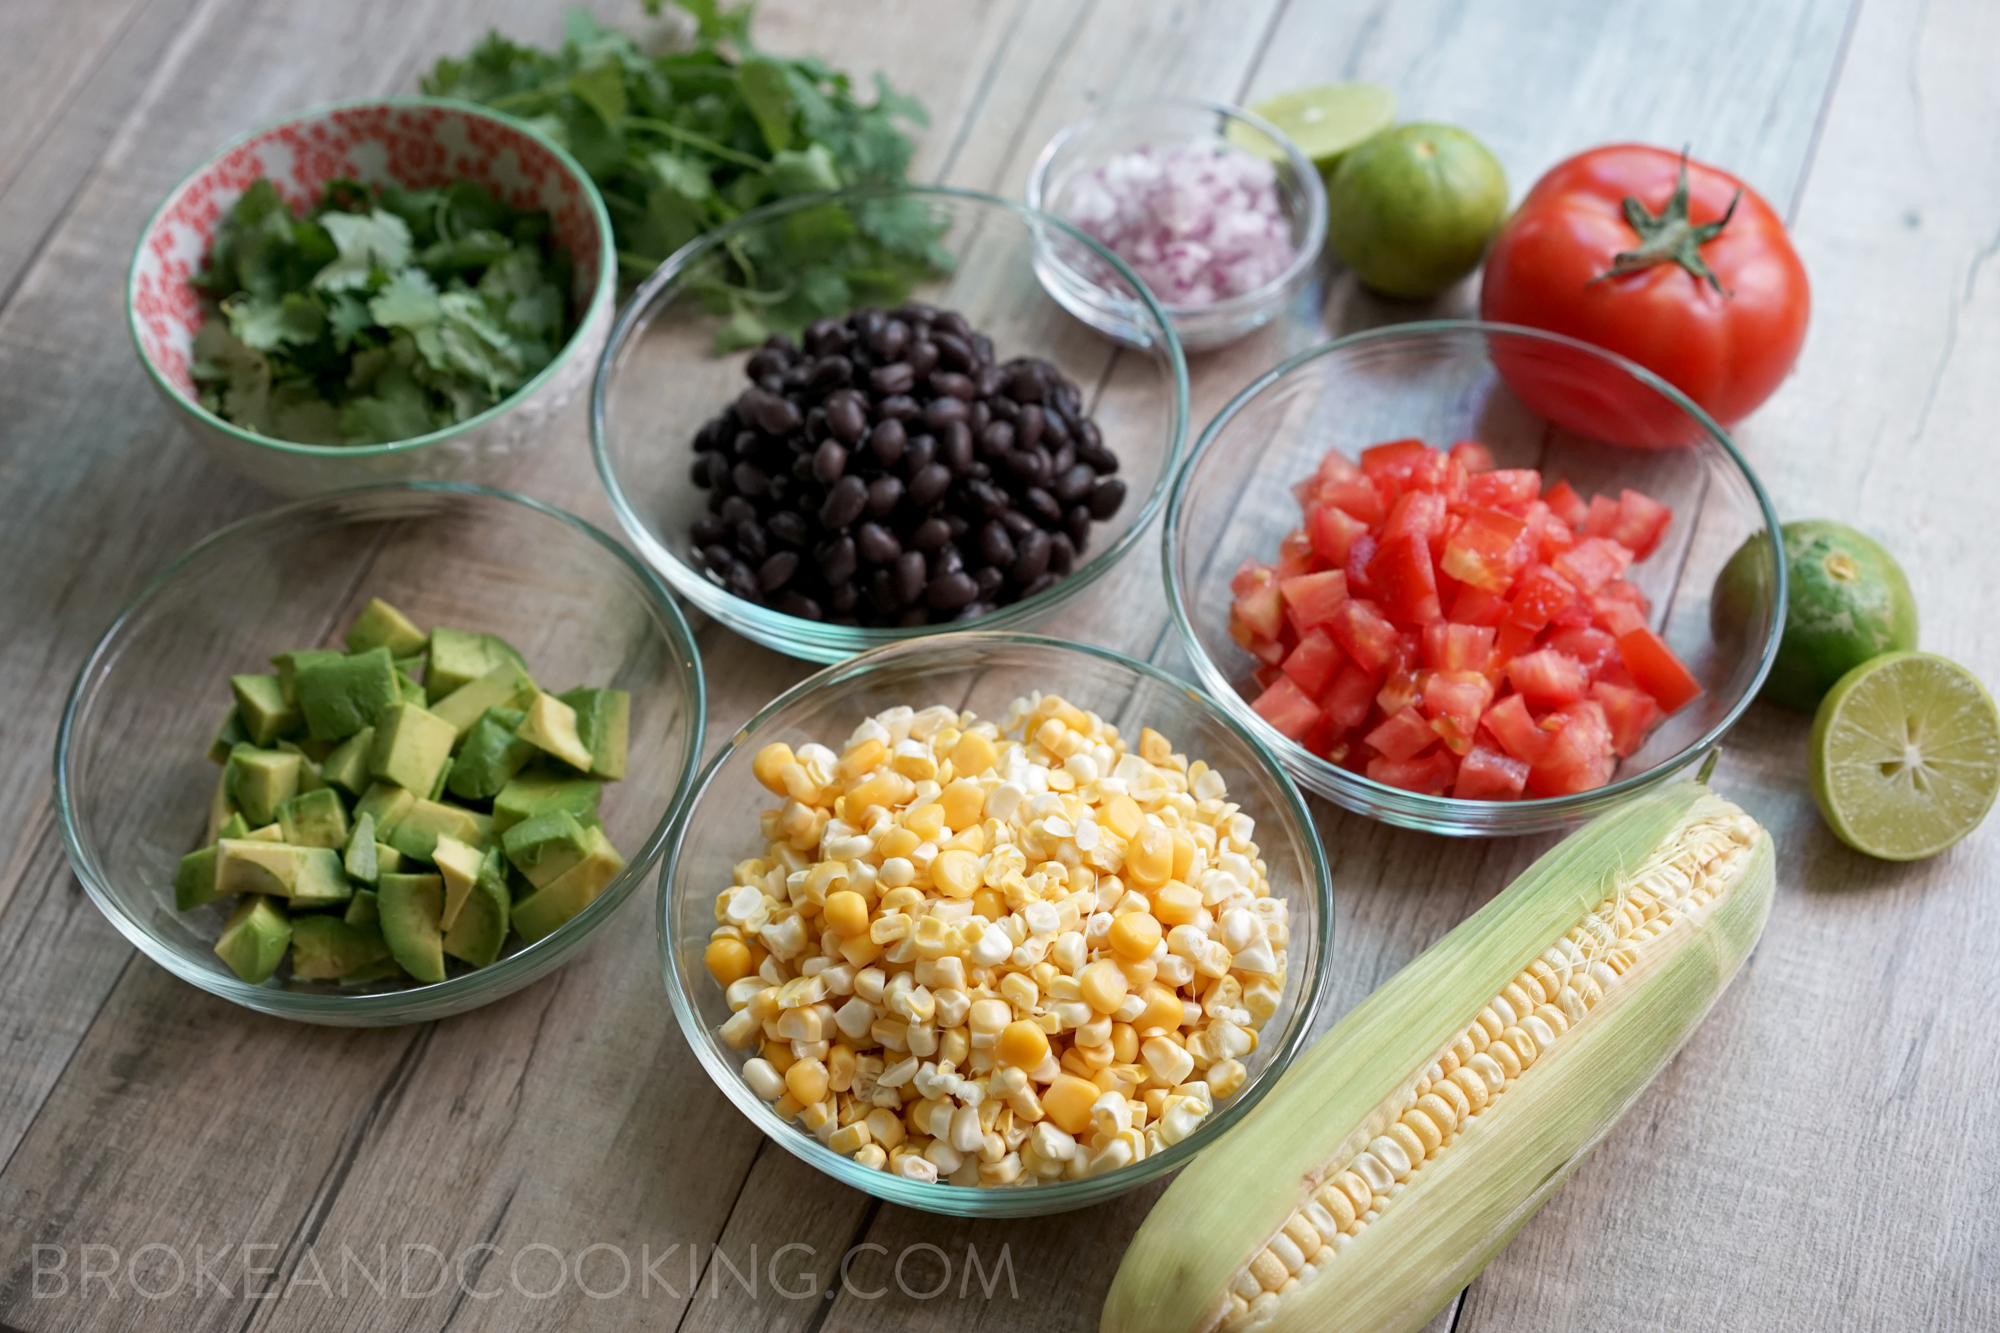 Honey Lime Summer Corn Salsa by Broke and Cooking - www.brokeandcooking.com